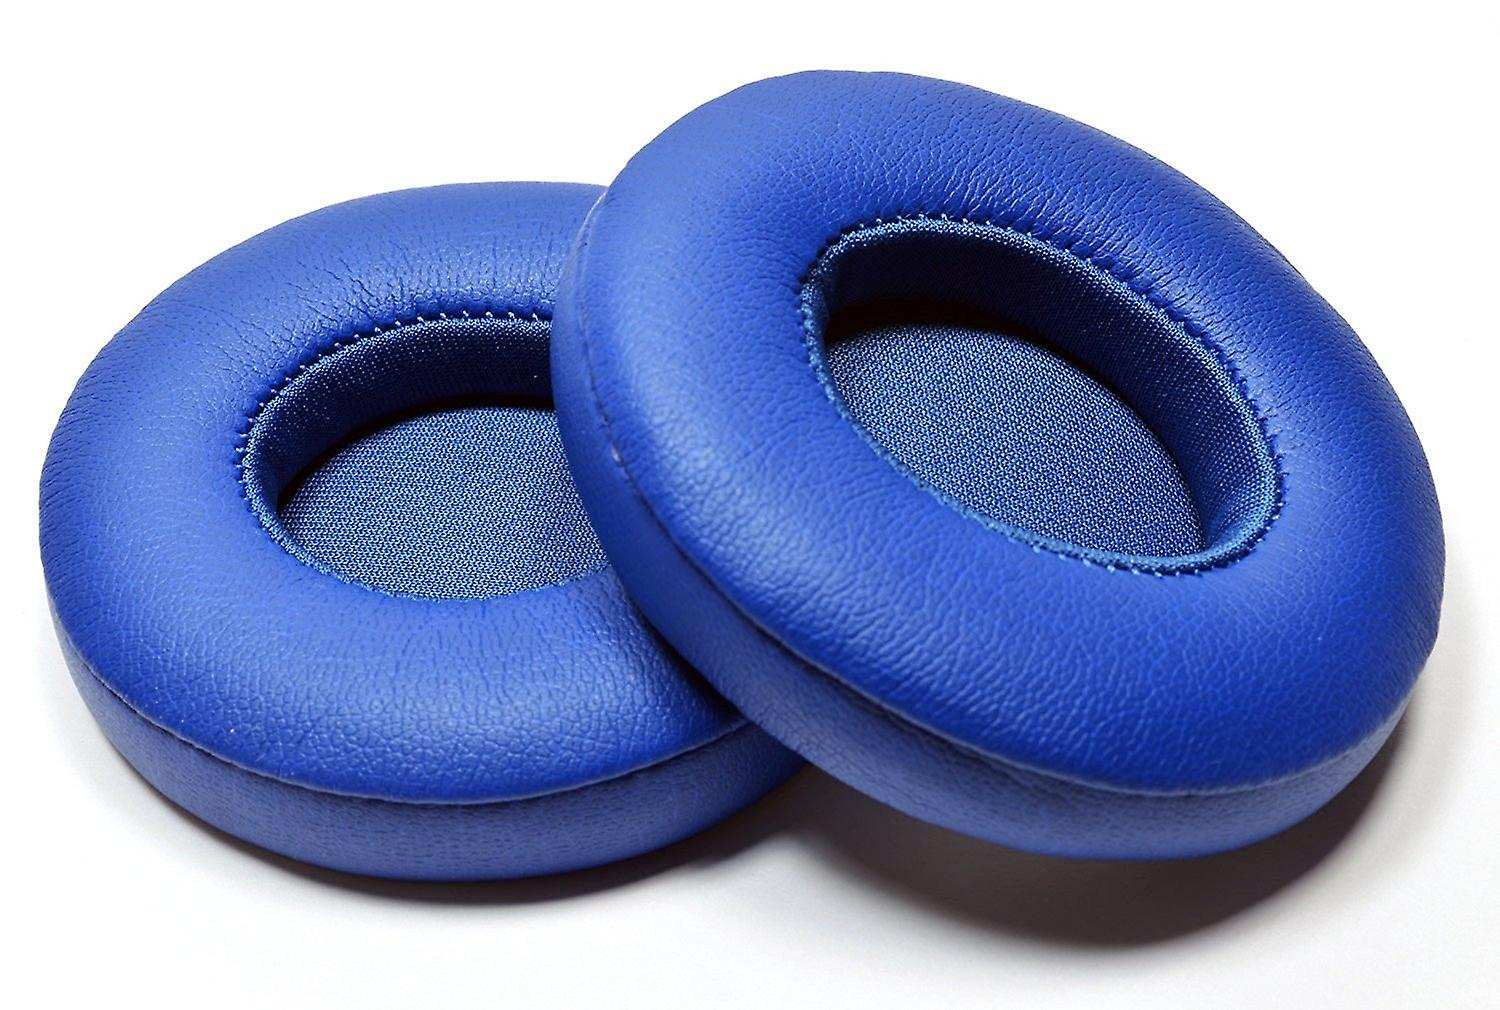 REYTID Replacement Blue Ear Pad Cushion Kit Compatible with Beats By Dr. Dre Solo2 & Solo2 Wireless Headphones